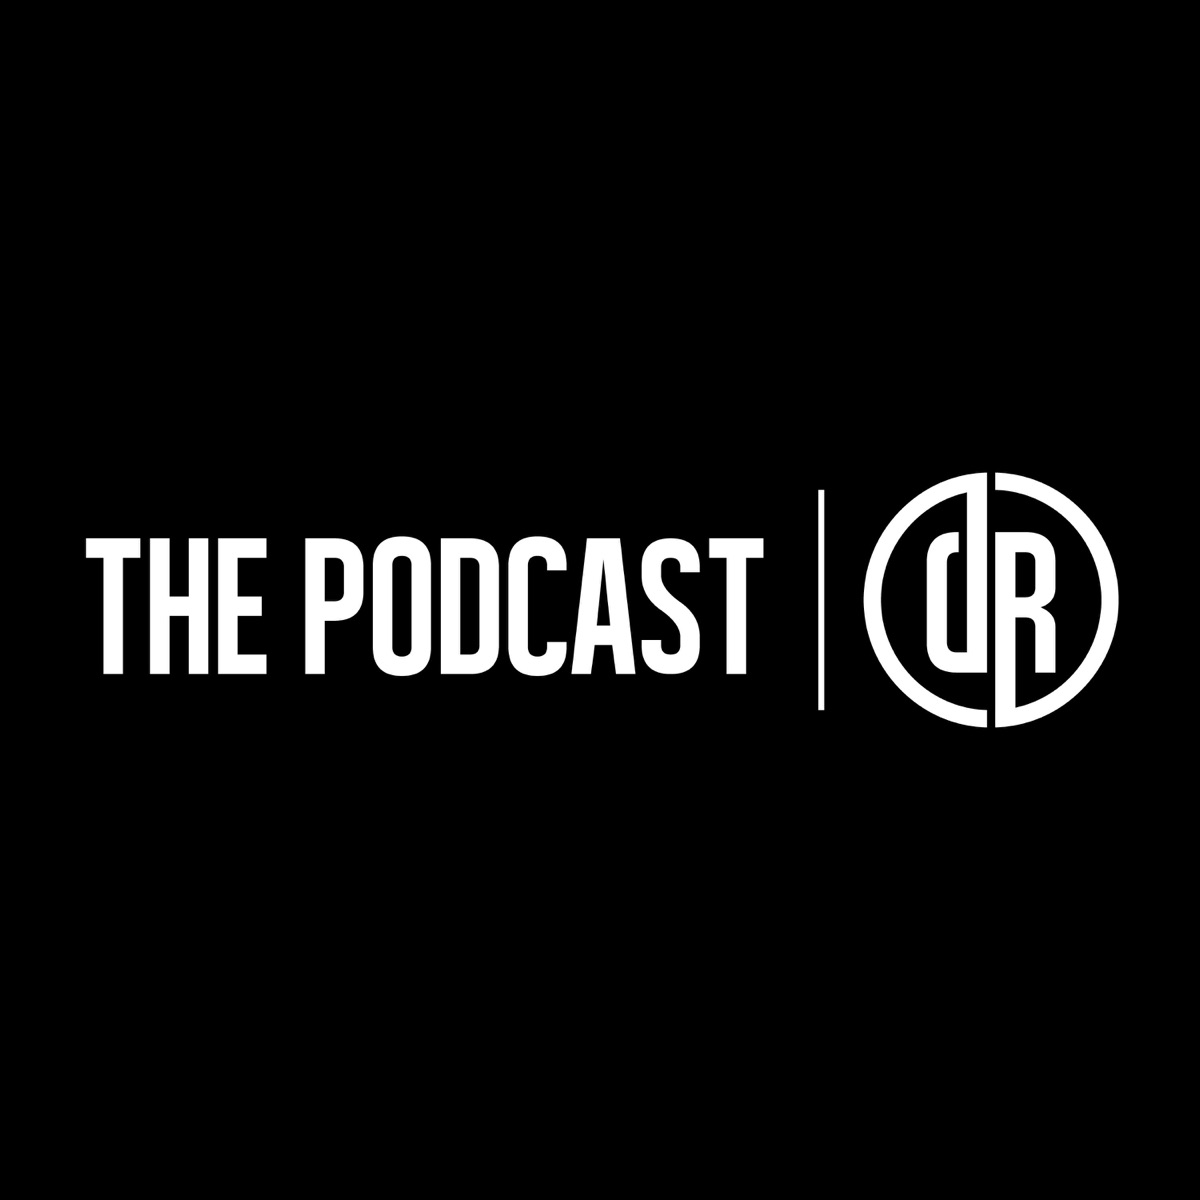 Darkrow: The Podcast